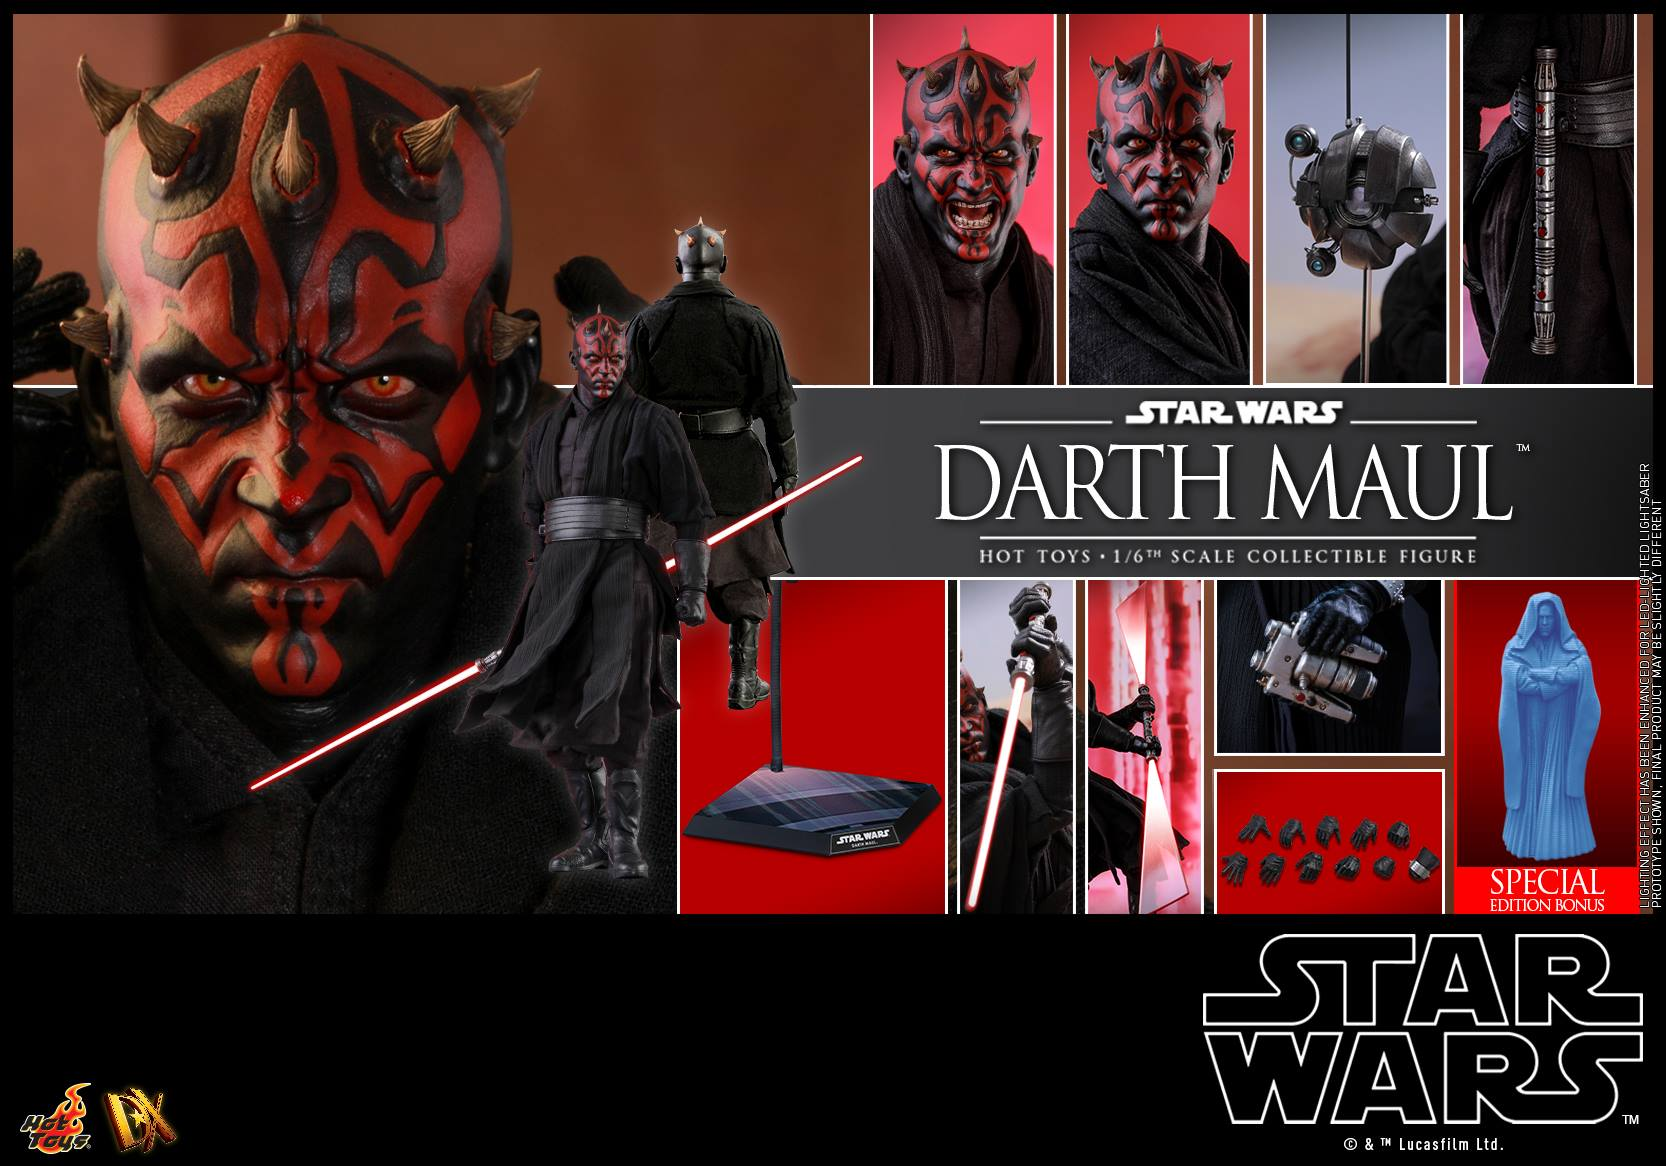 ht-darth.maul10 (2)